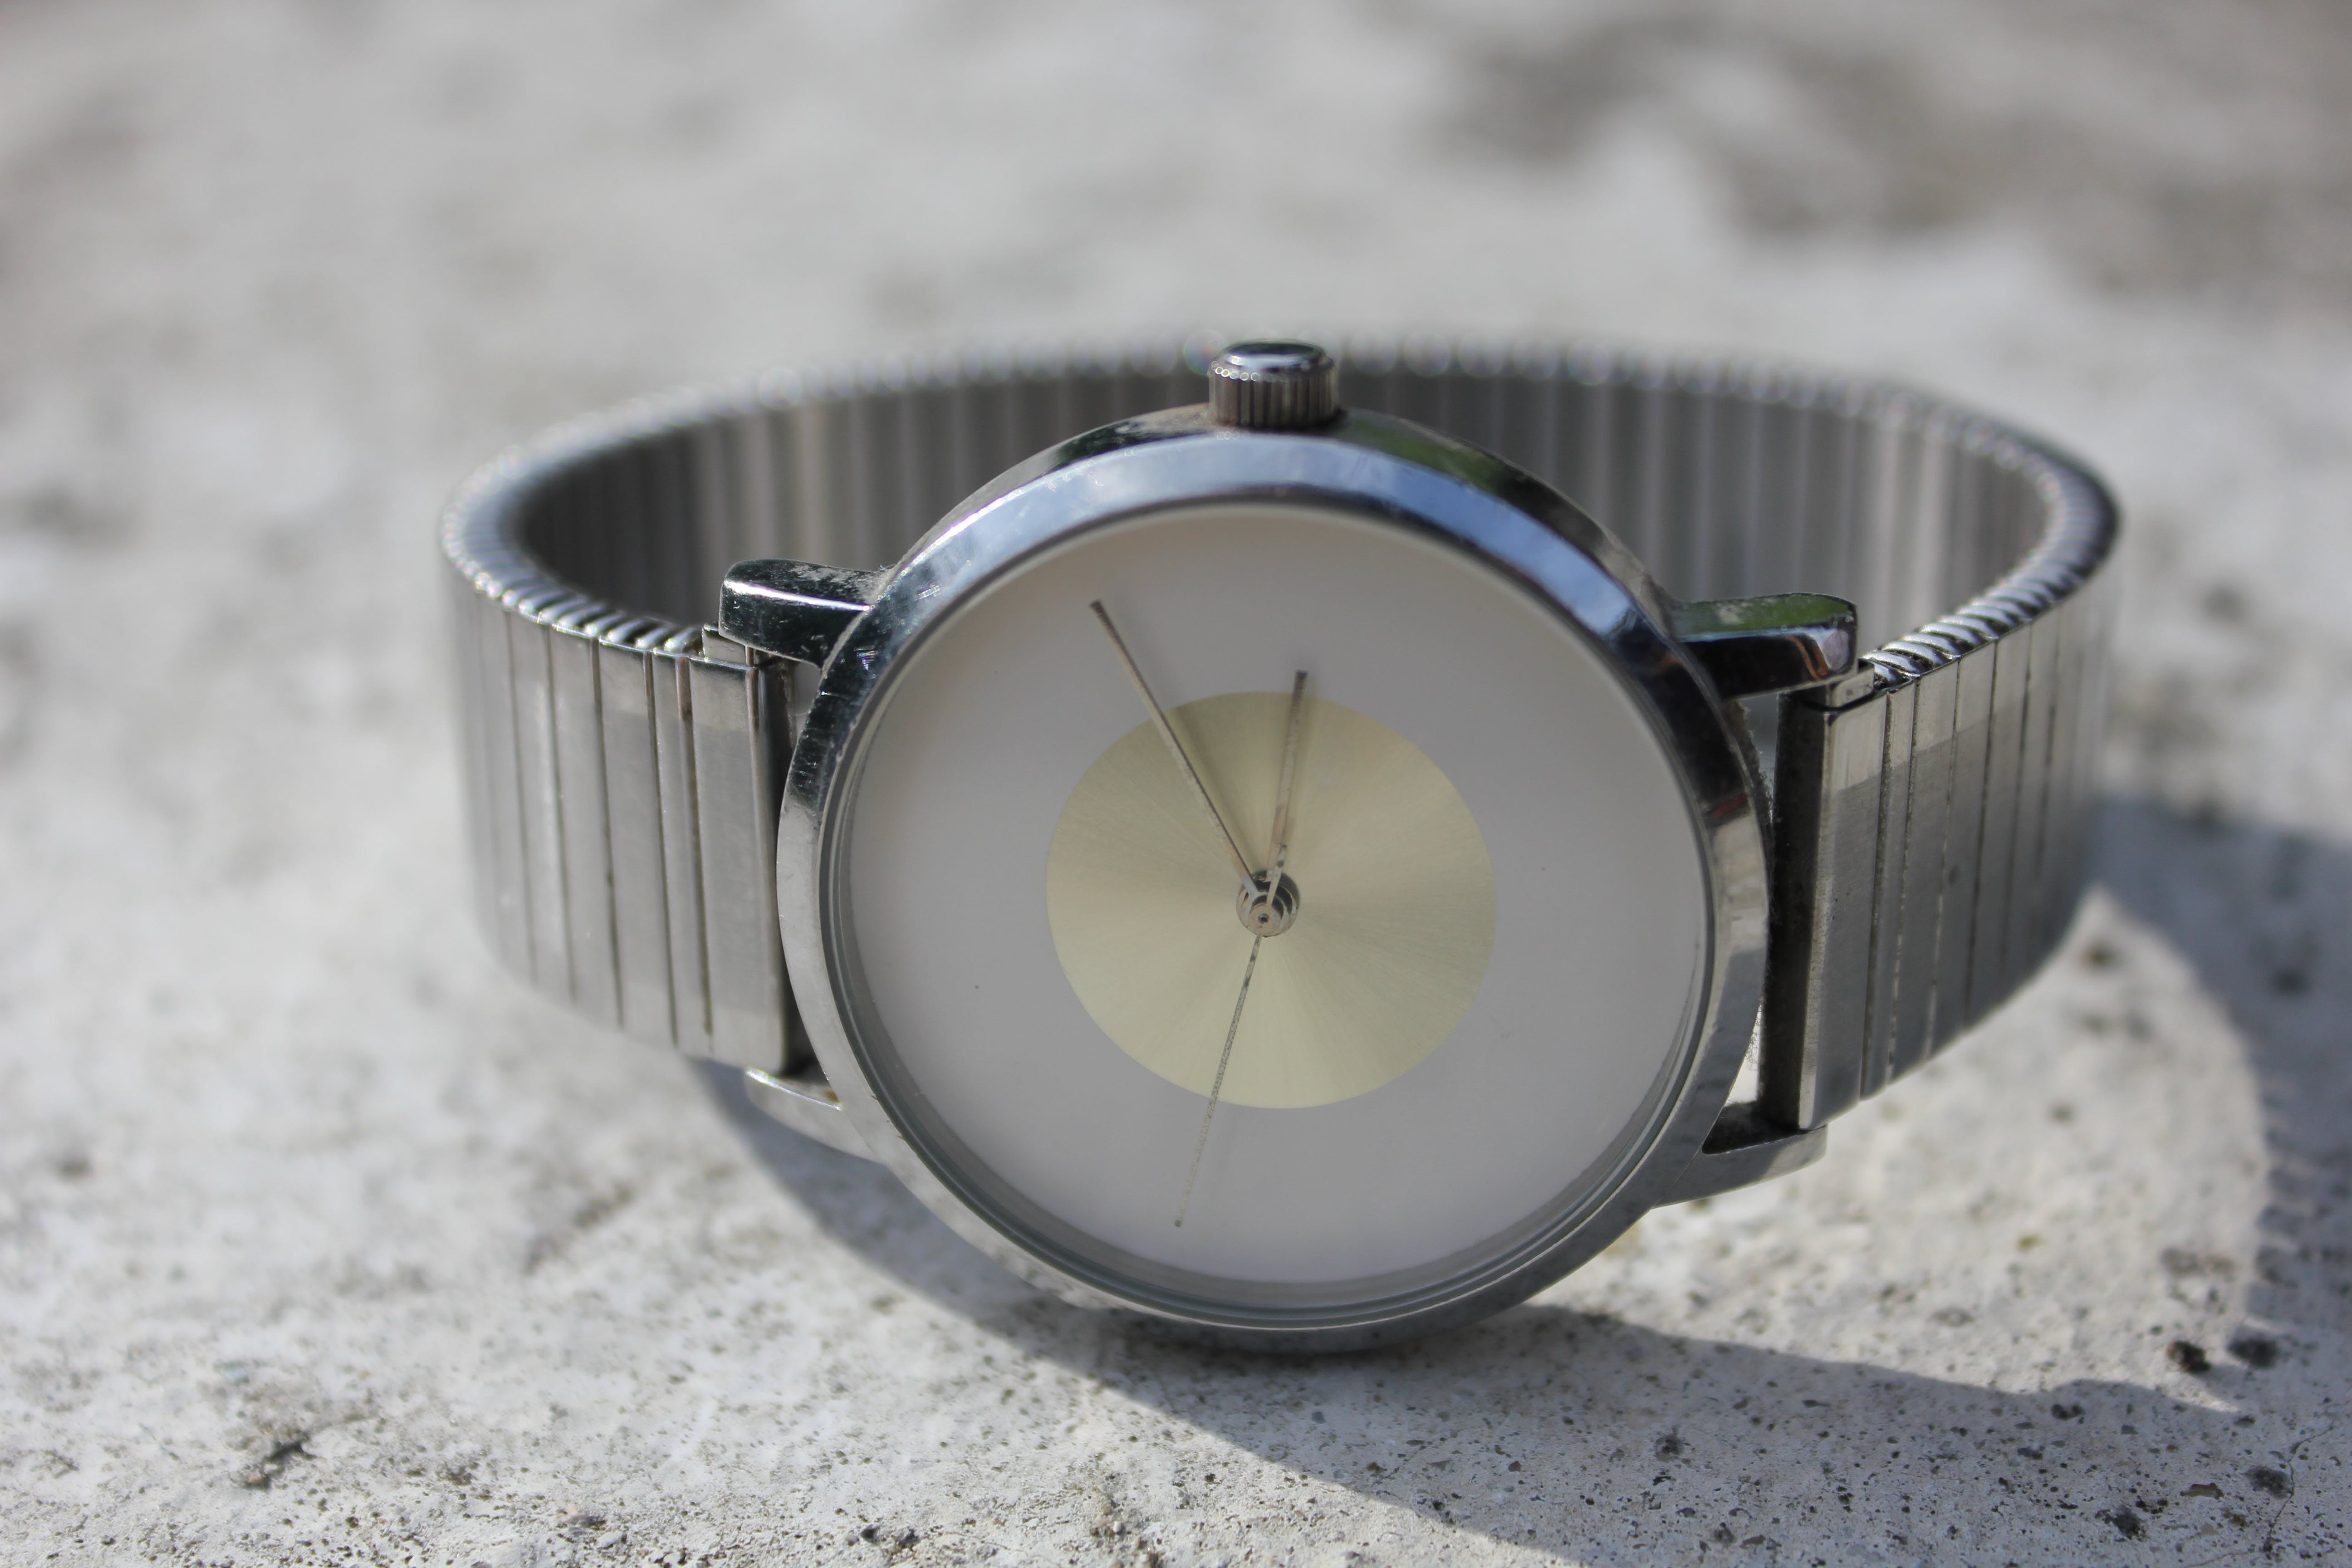 Silver-colored Analog Watch